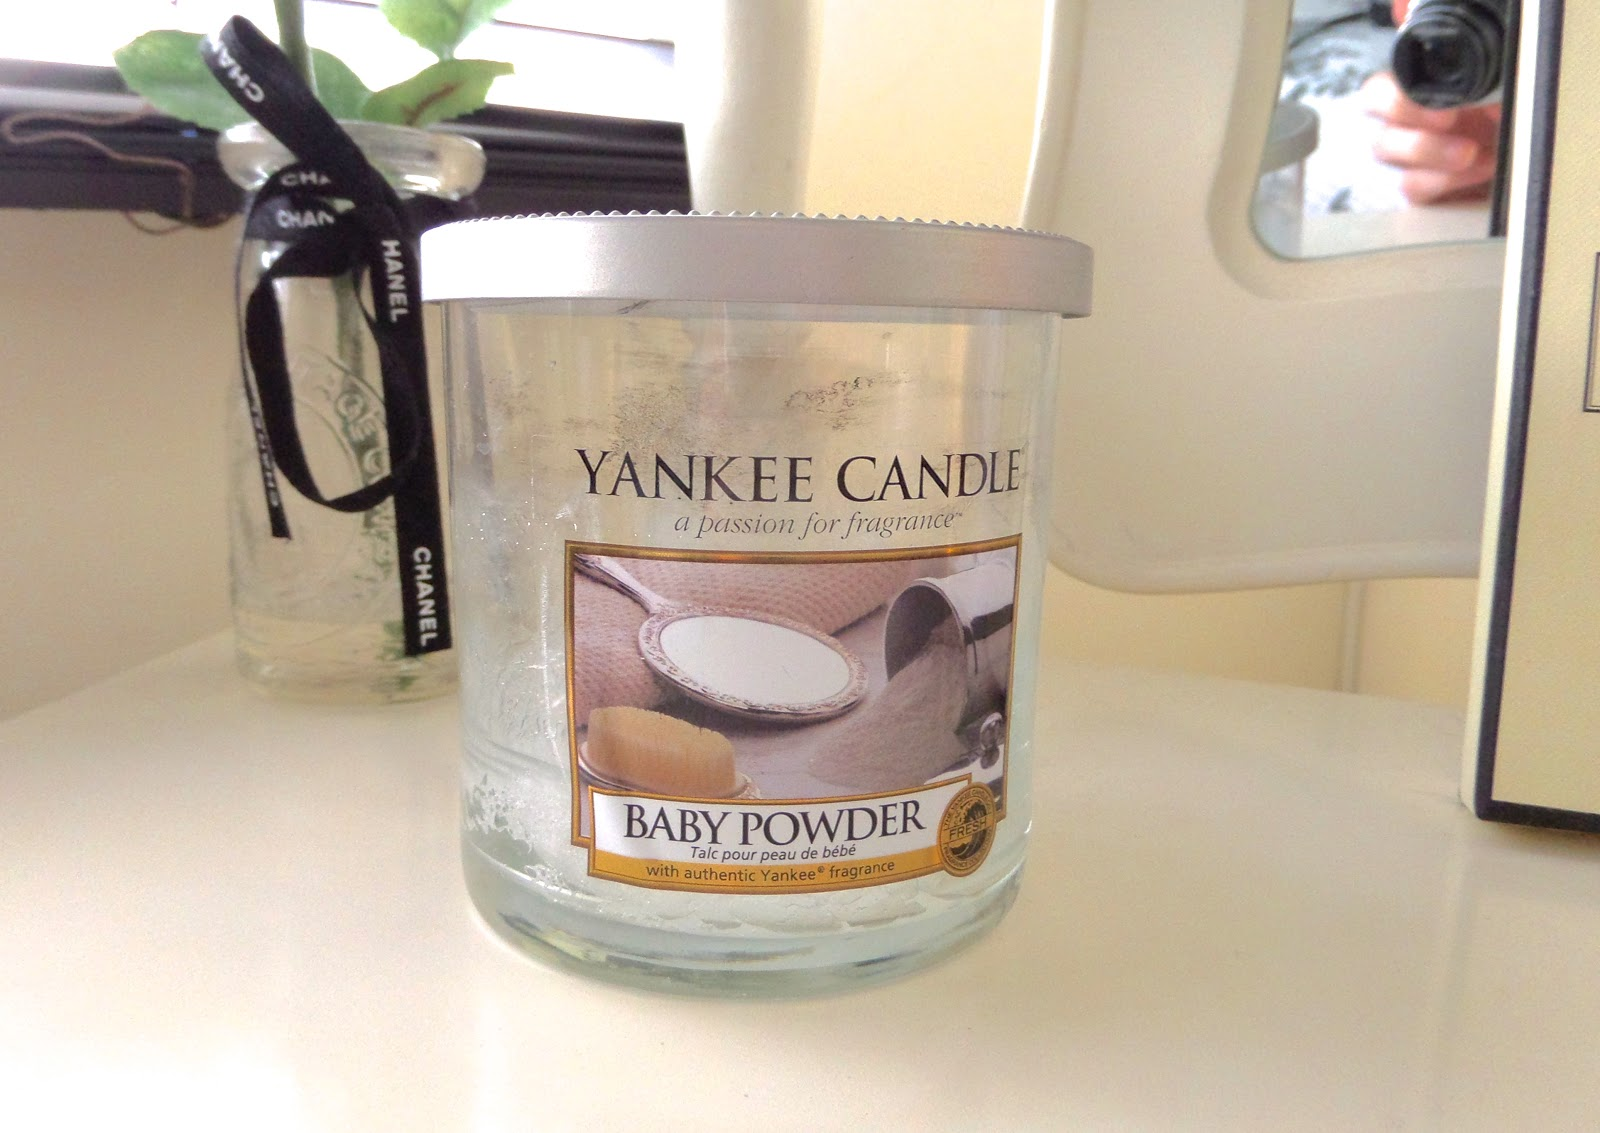 Yankee Candle Baby Powder Review